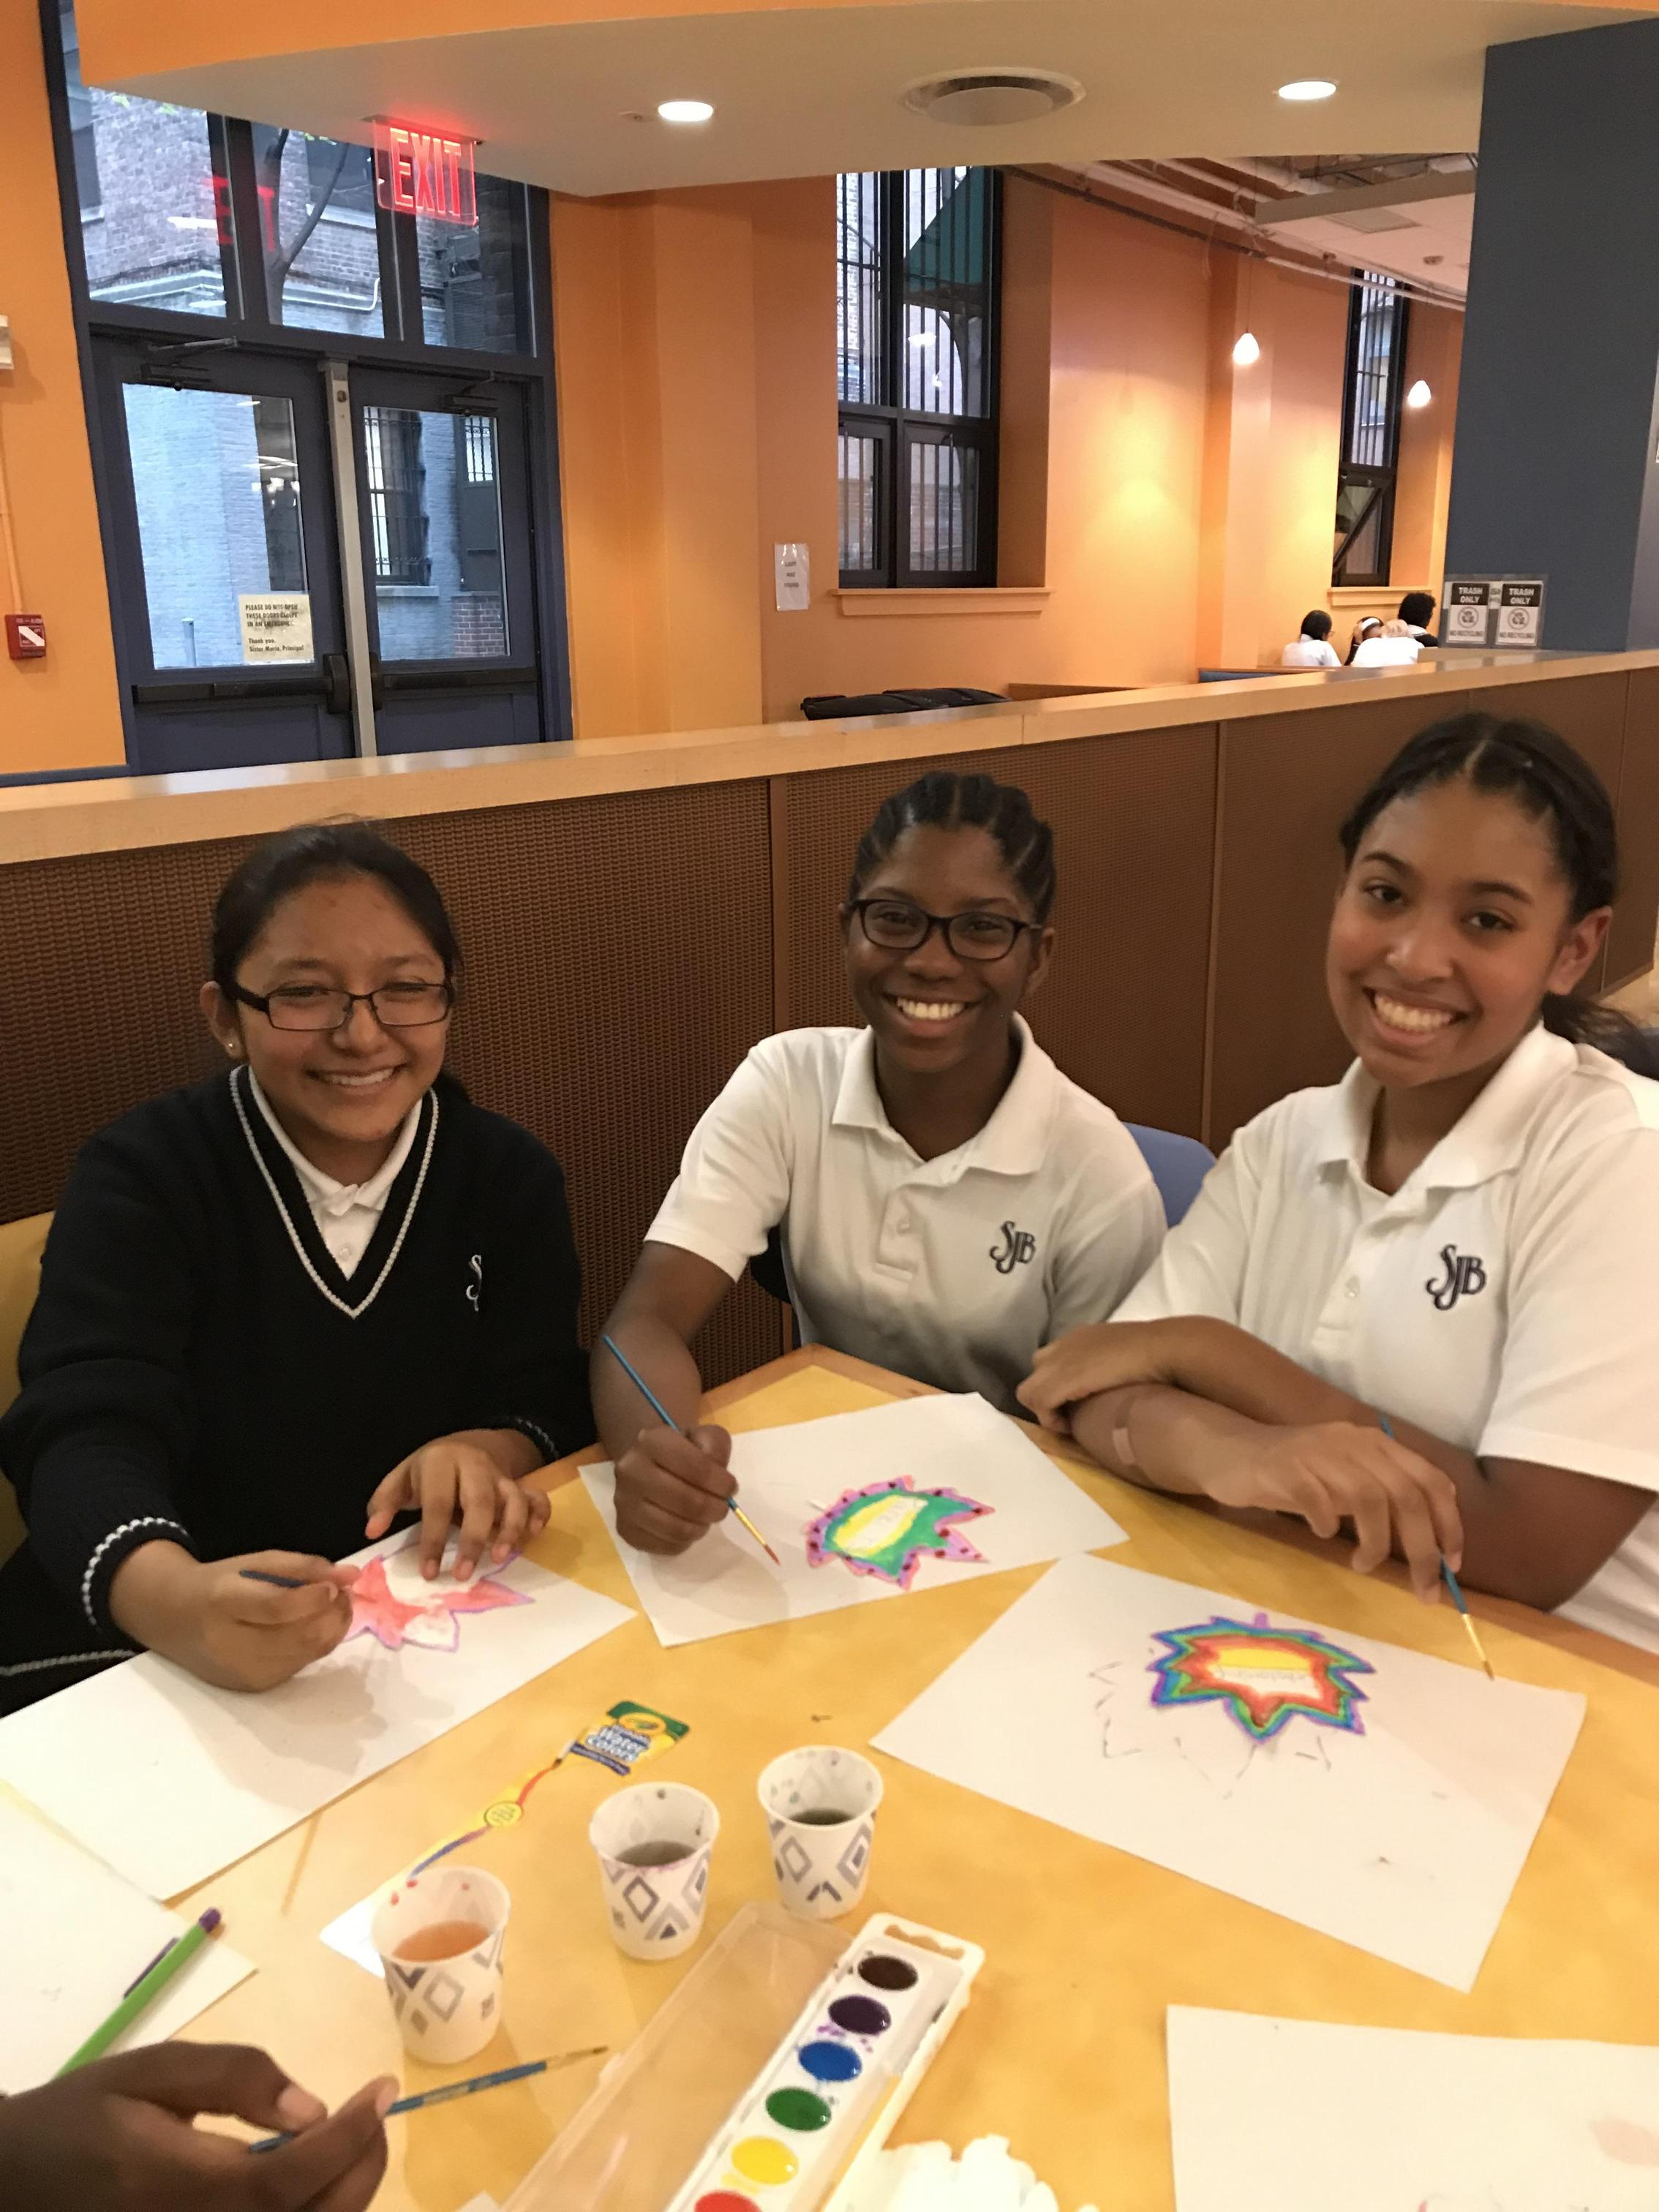 Three girls sit at table with art supplies